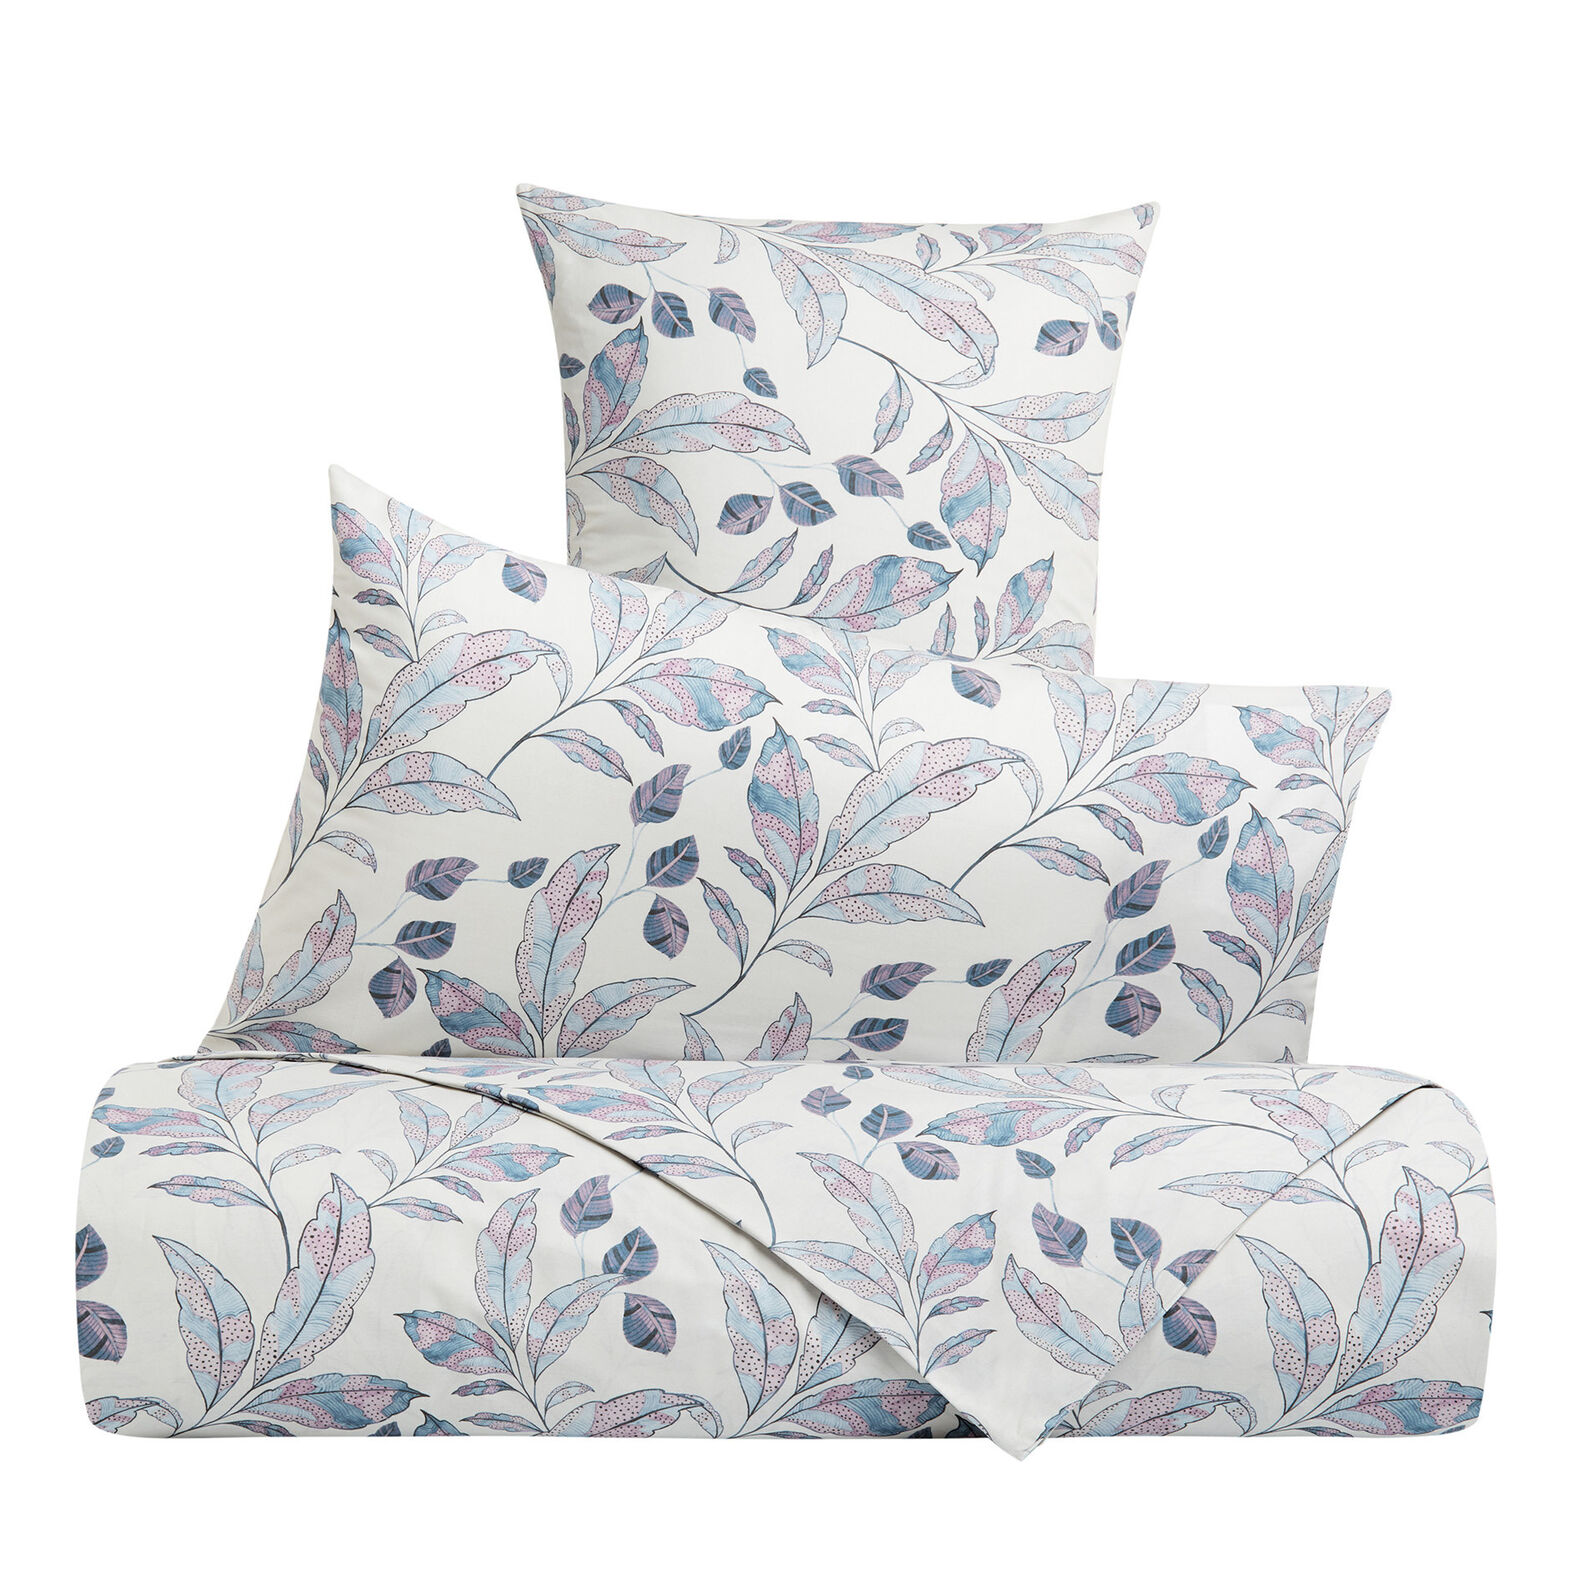 Cotton percale pillowcase with leaf pattern